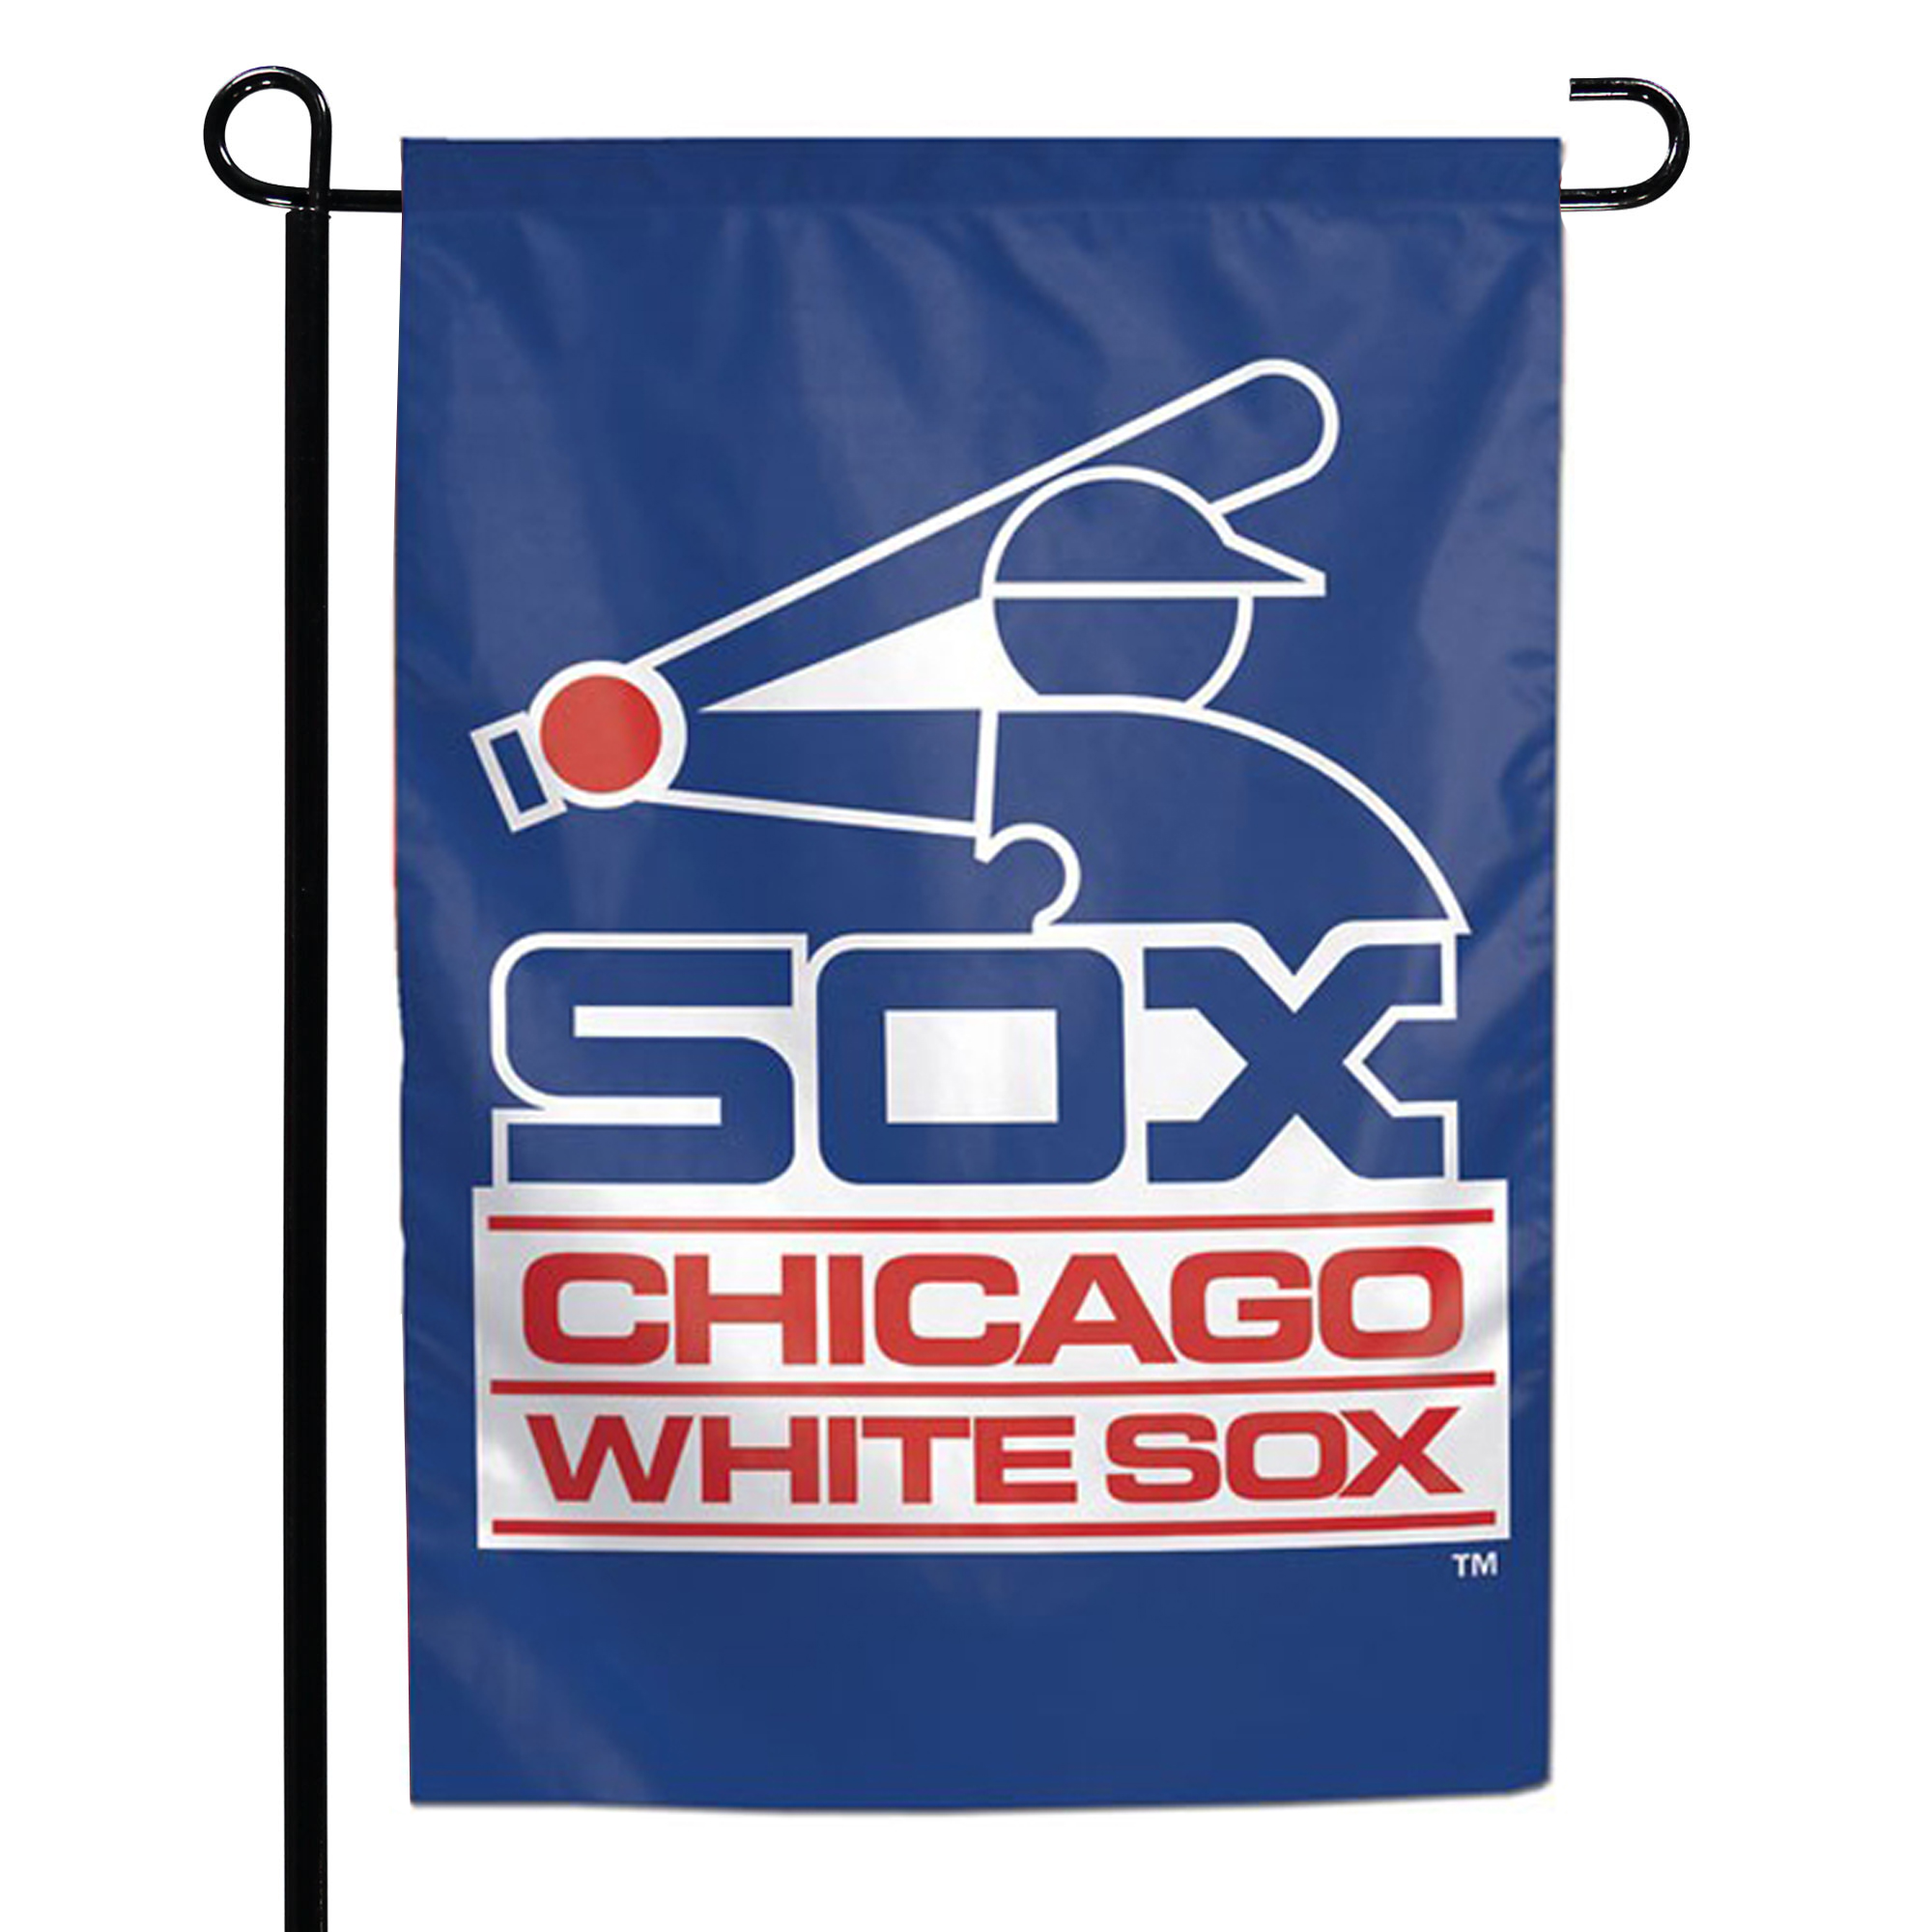 "Chicago White Sox WinCraft 12.5"" x 18"" Double-Sided Garden Flag - No Size"